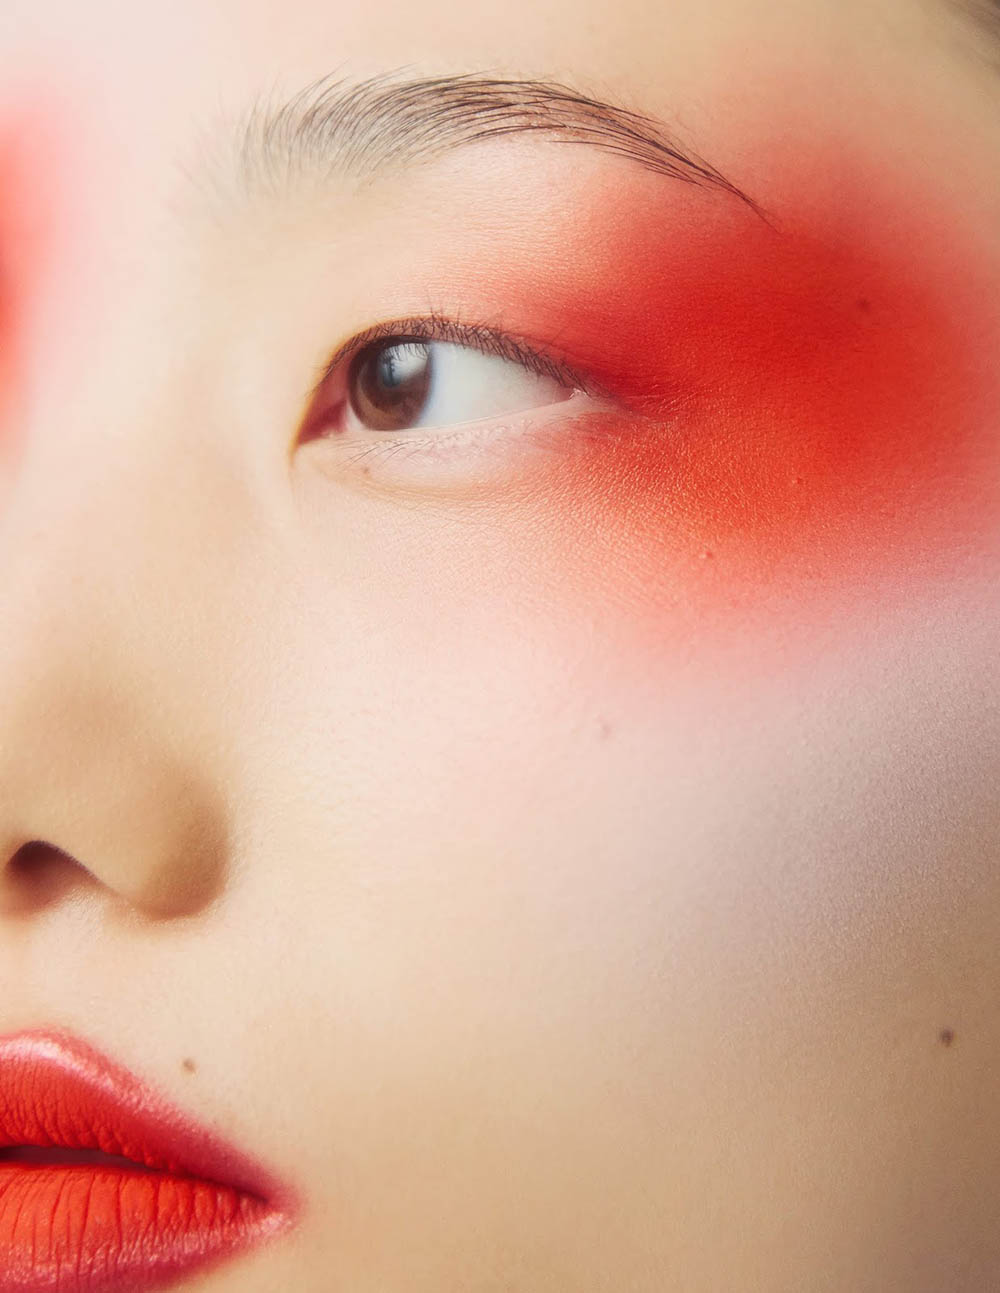 Chunjie Liu and Liu Huan by Ruo Bing Li for Harper's Bazaar China October 2019